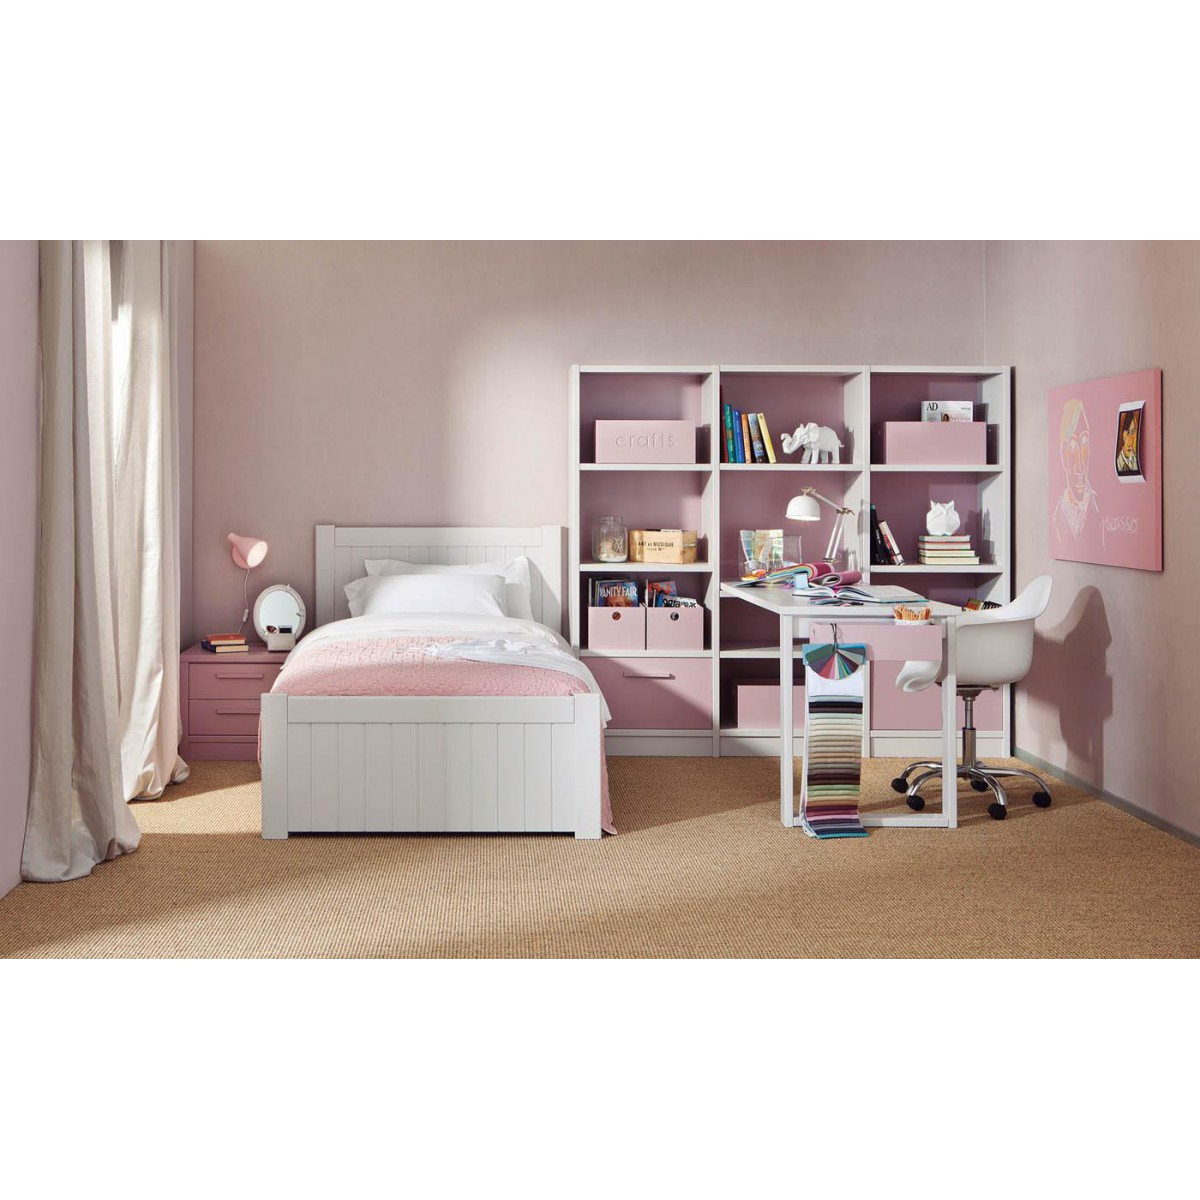 chambre premier ge pour enfants de haute qualit sign e asoral. Black Bedroom Furniture Sets. Home Design Ideas